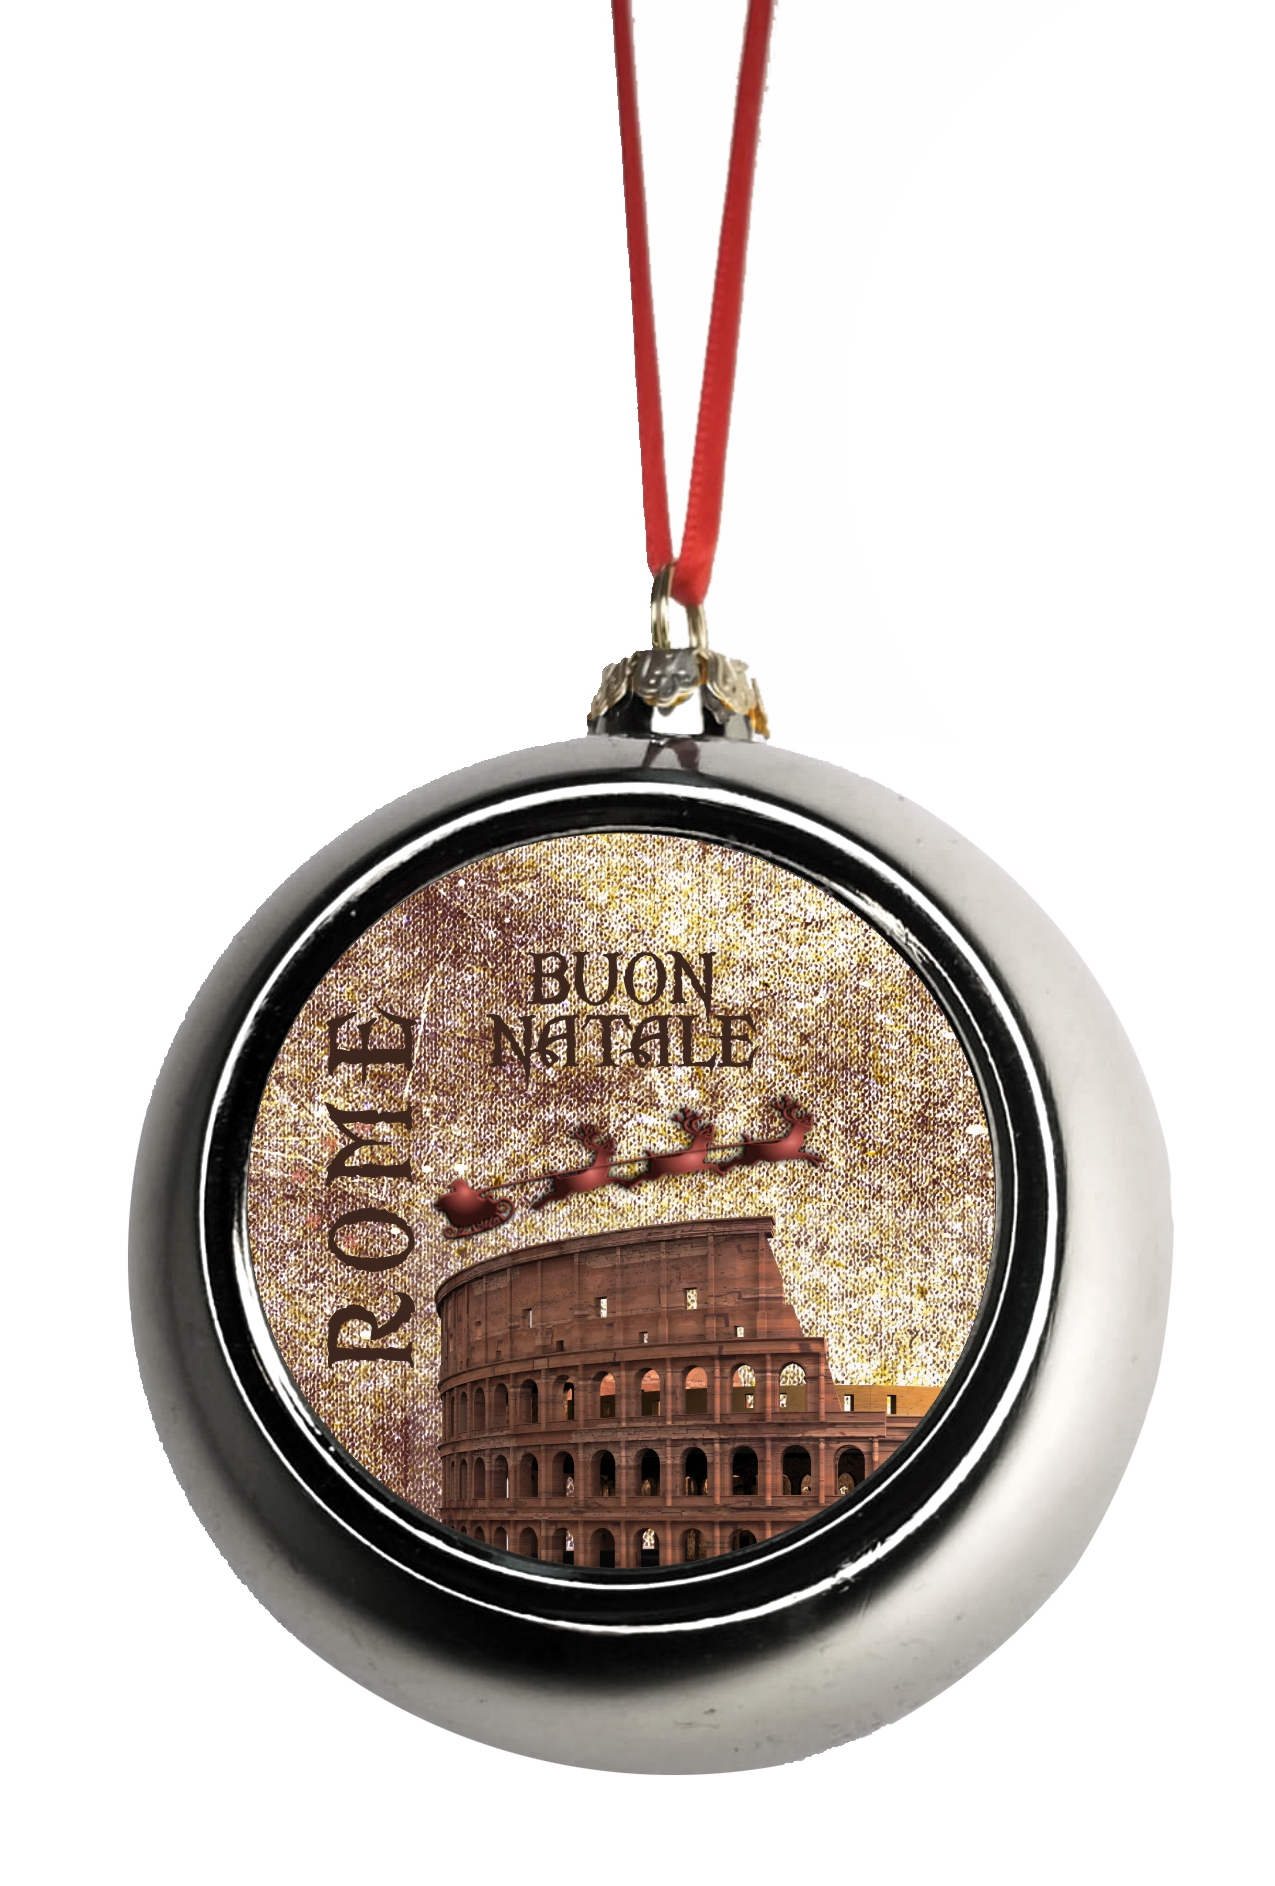 Roman Christmas Ornaments.Ornaments Vintage Santa Klaus And Sleigh Riding Over The Roman Colosseum In Rome Italy Bauble Christmas Ornaments Silver Bauble Tree Xmas Balls